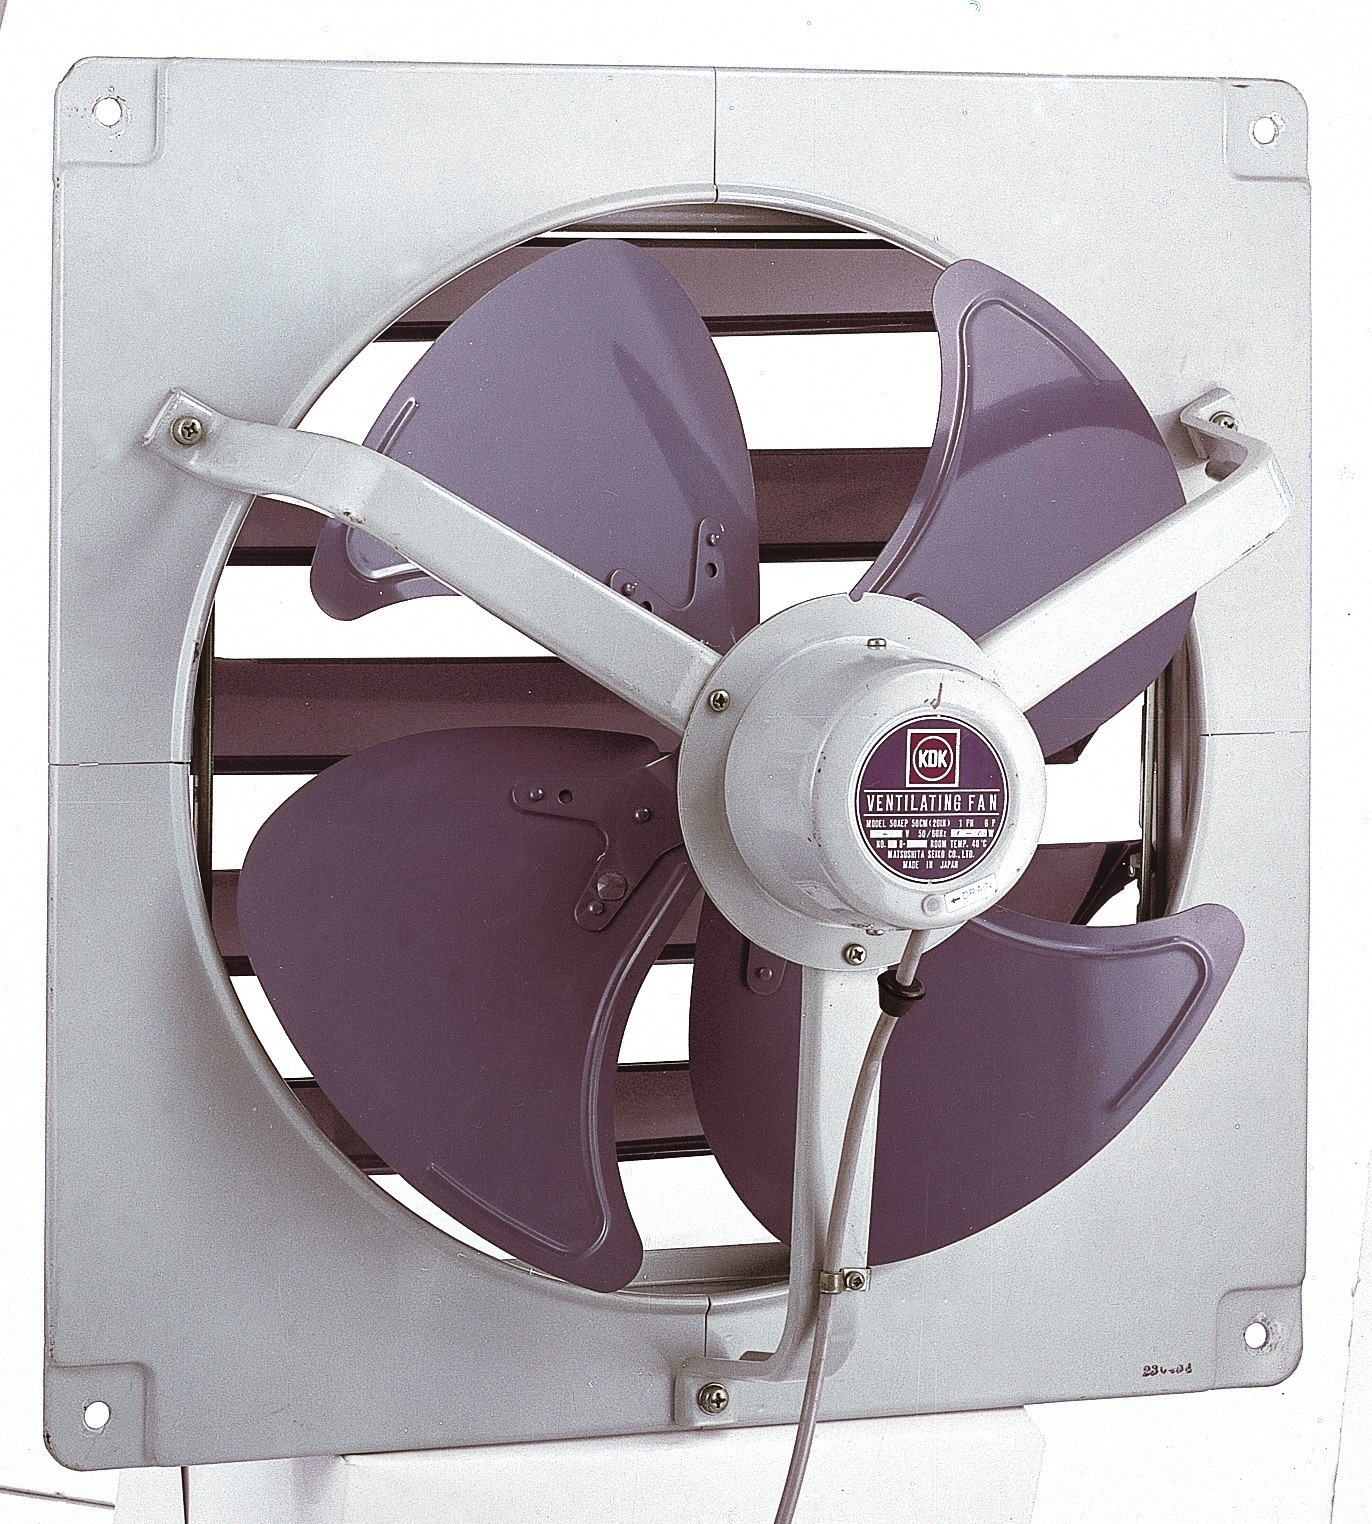 KDK WALL MOUNT INDUSTRIAL VENTILATING FAN 50AEQ2